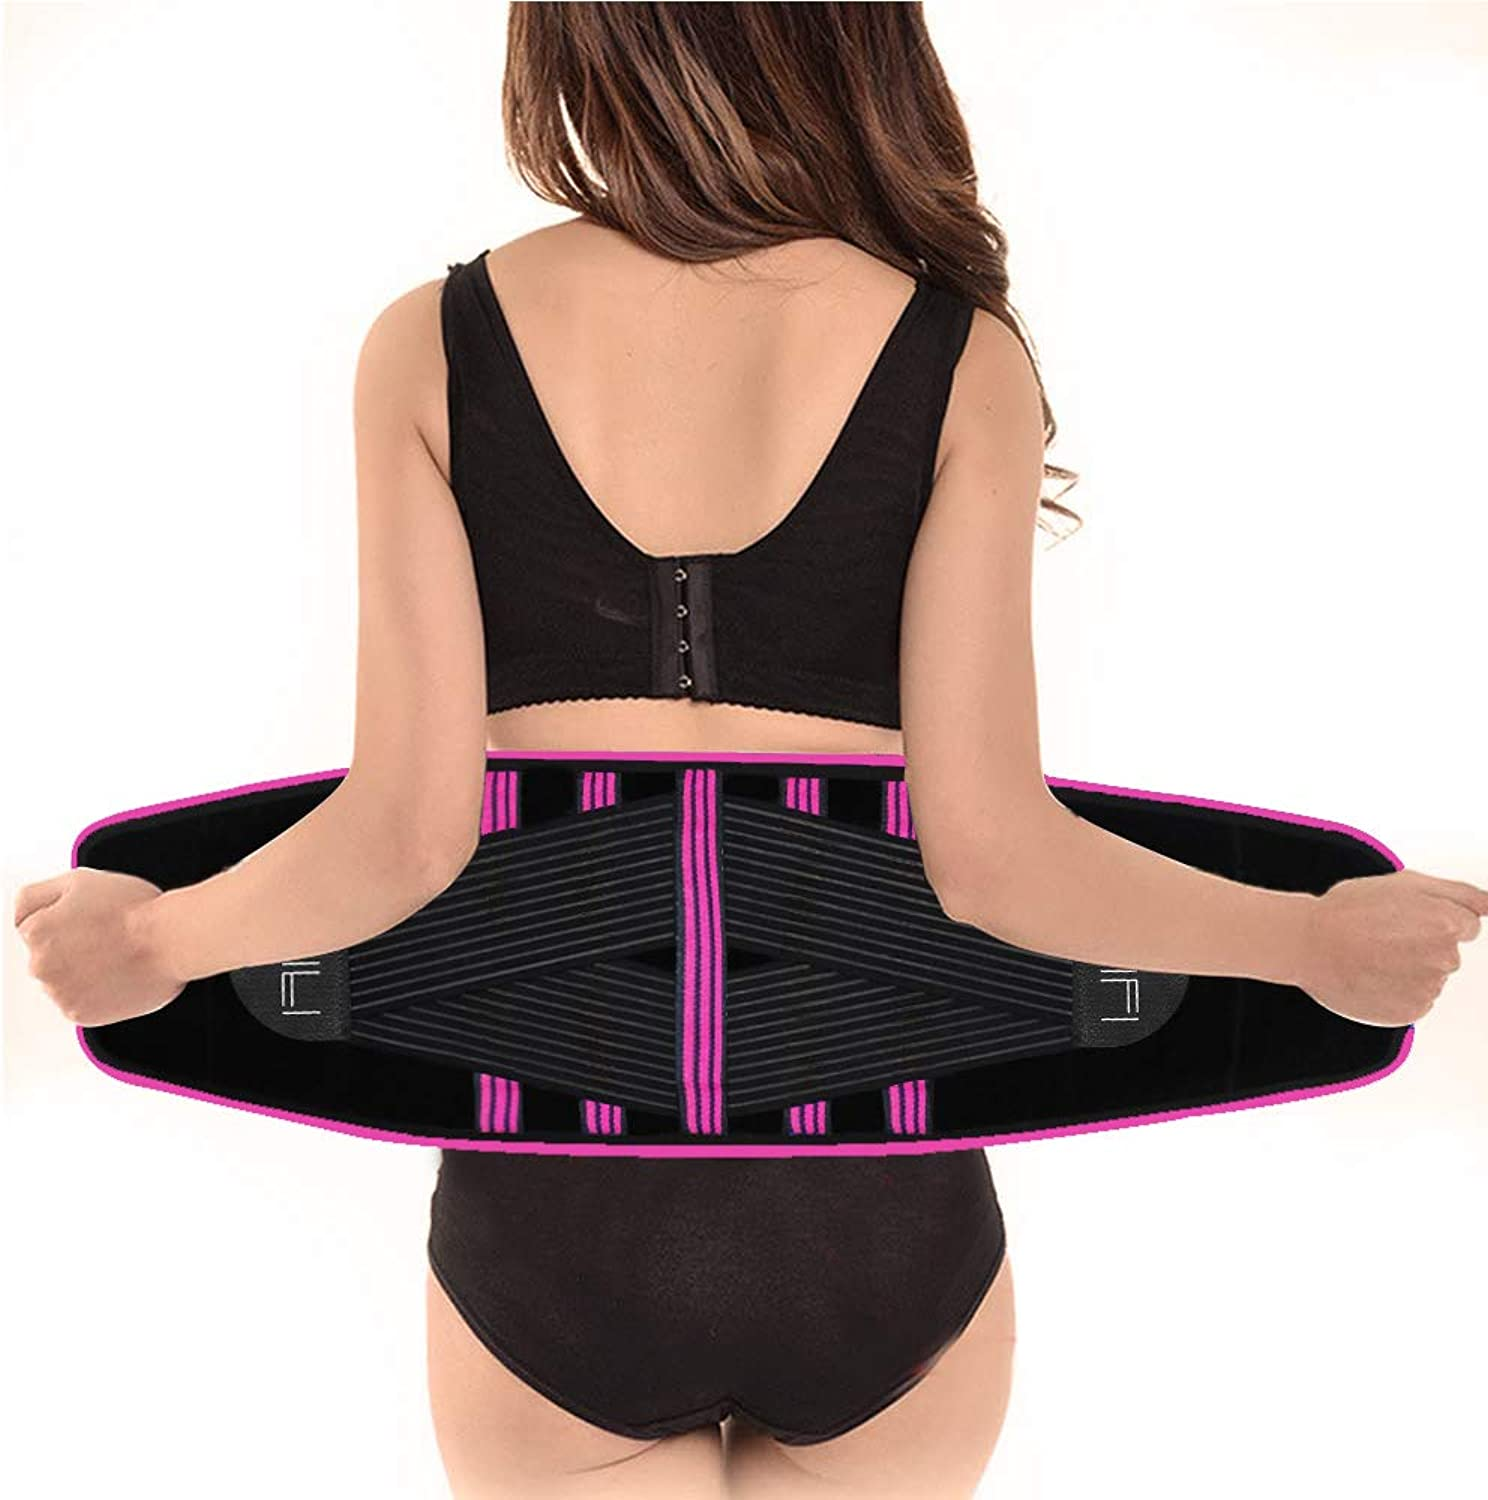 JITIFI Waist Trainer Corset Weight Loss Sport Slimming Body Shaper Long Torso